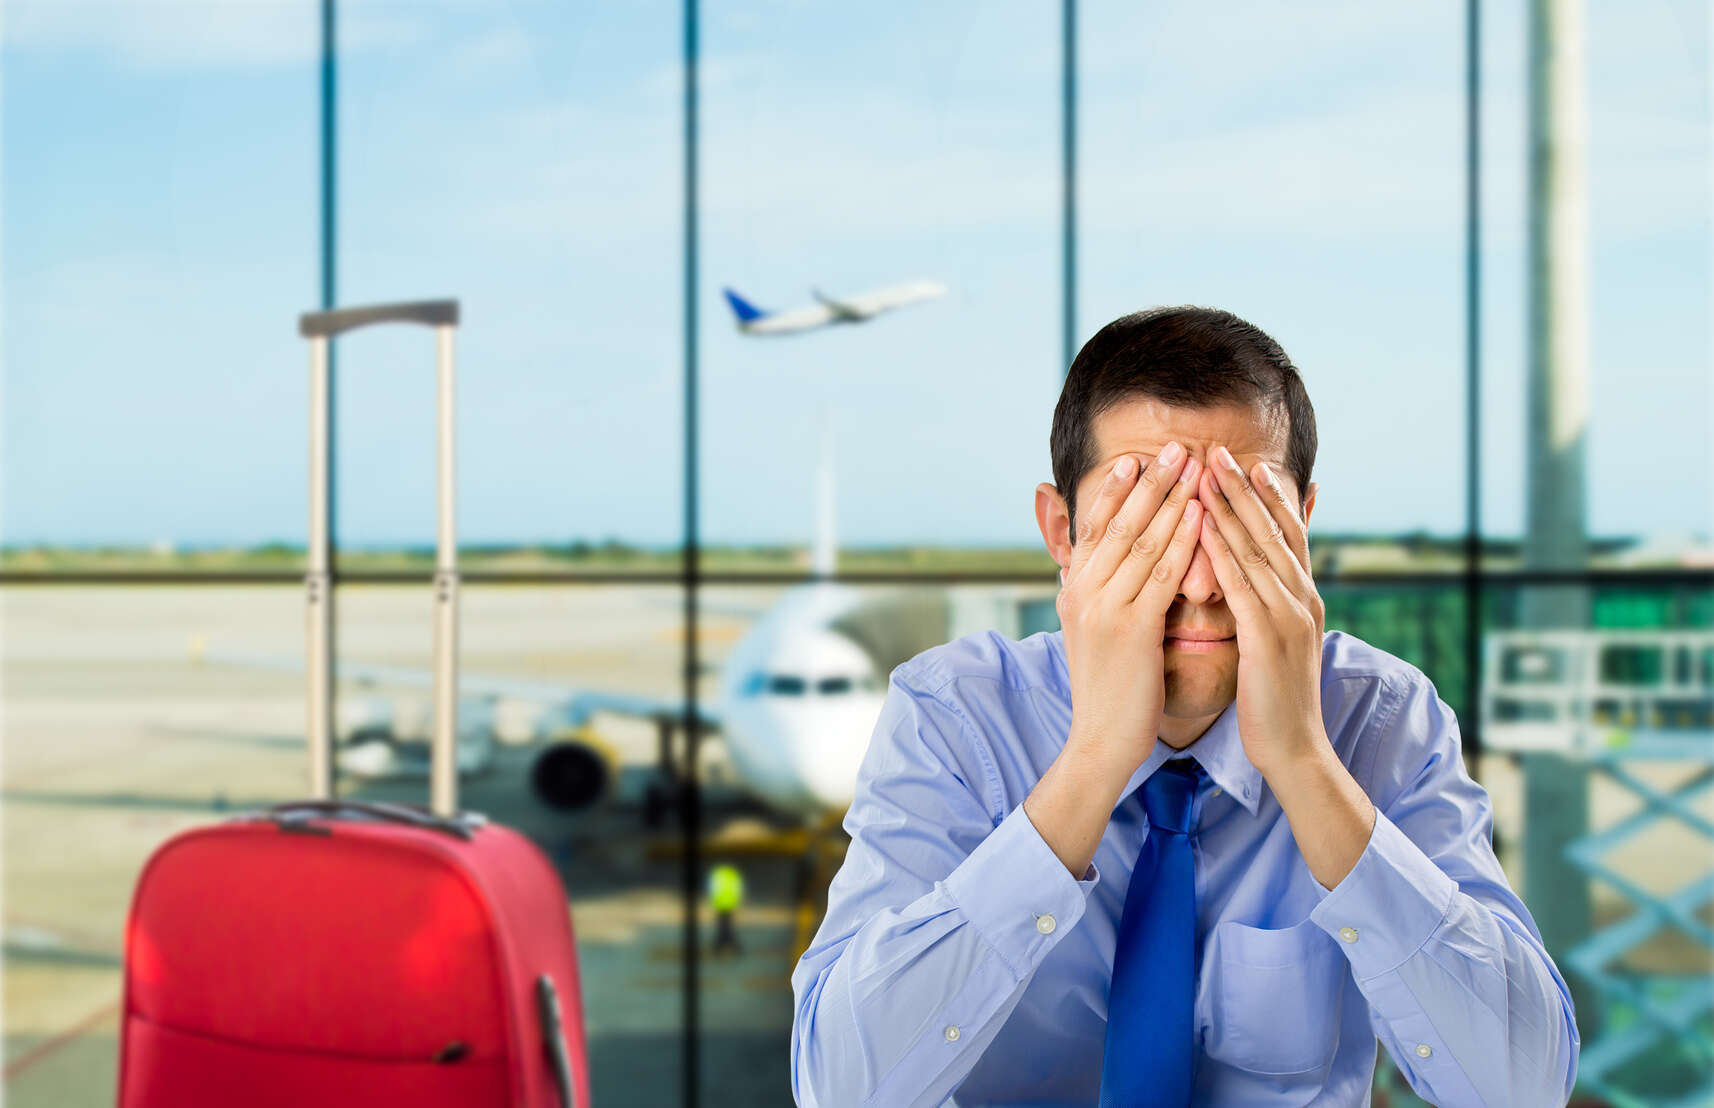 Have you been overpaying for Multi-City, Open Jaw and Circle Trip Fares?